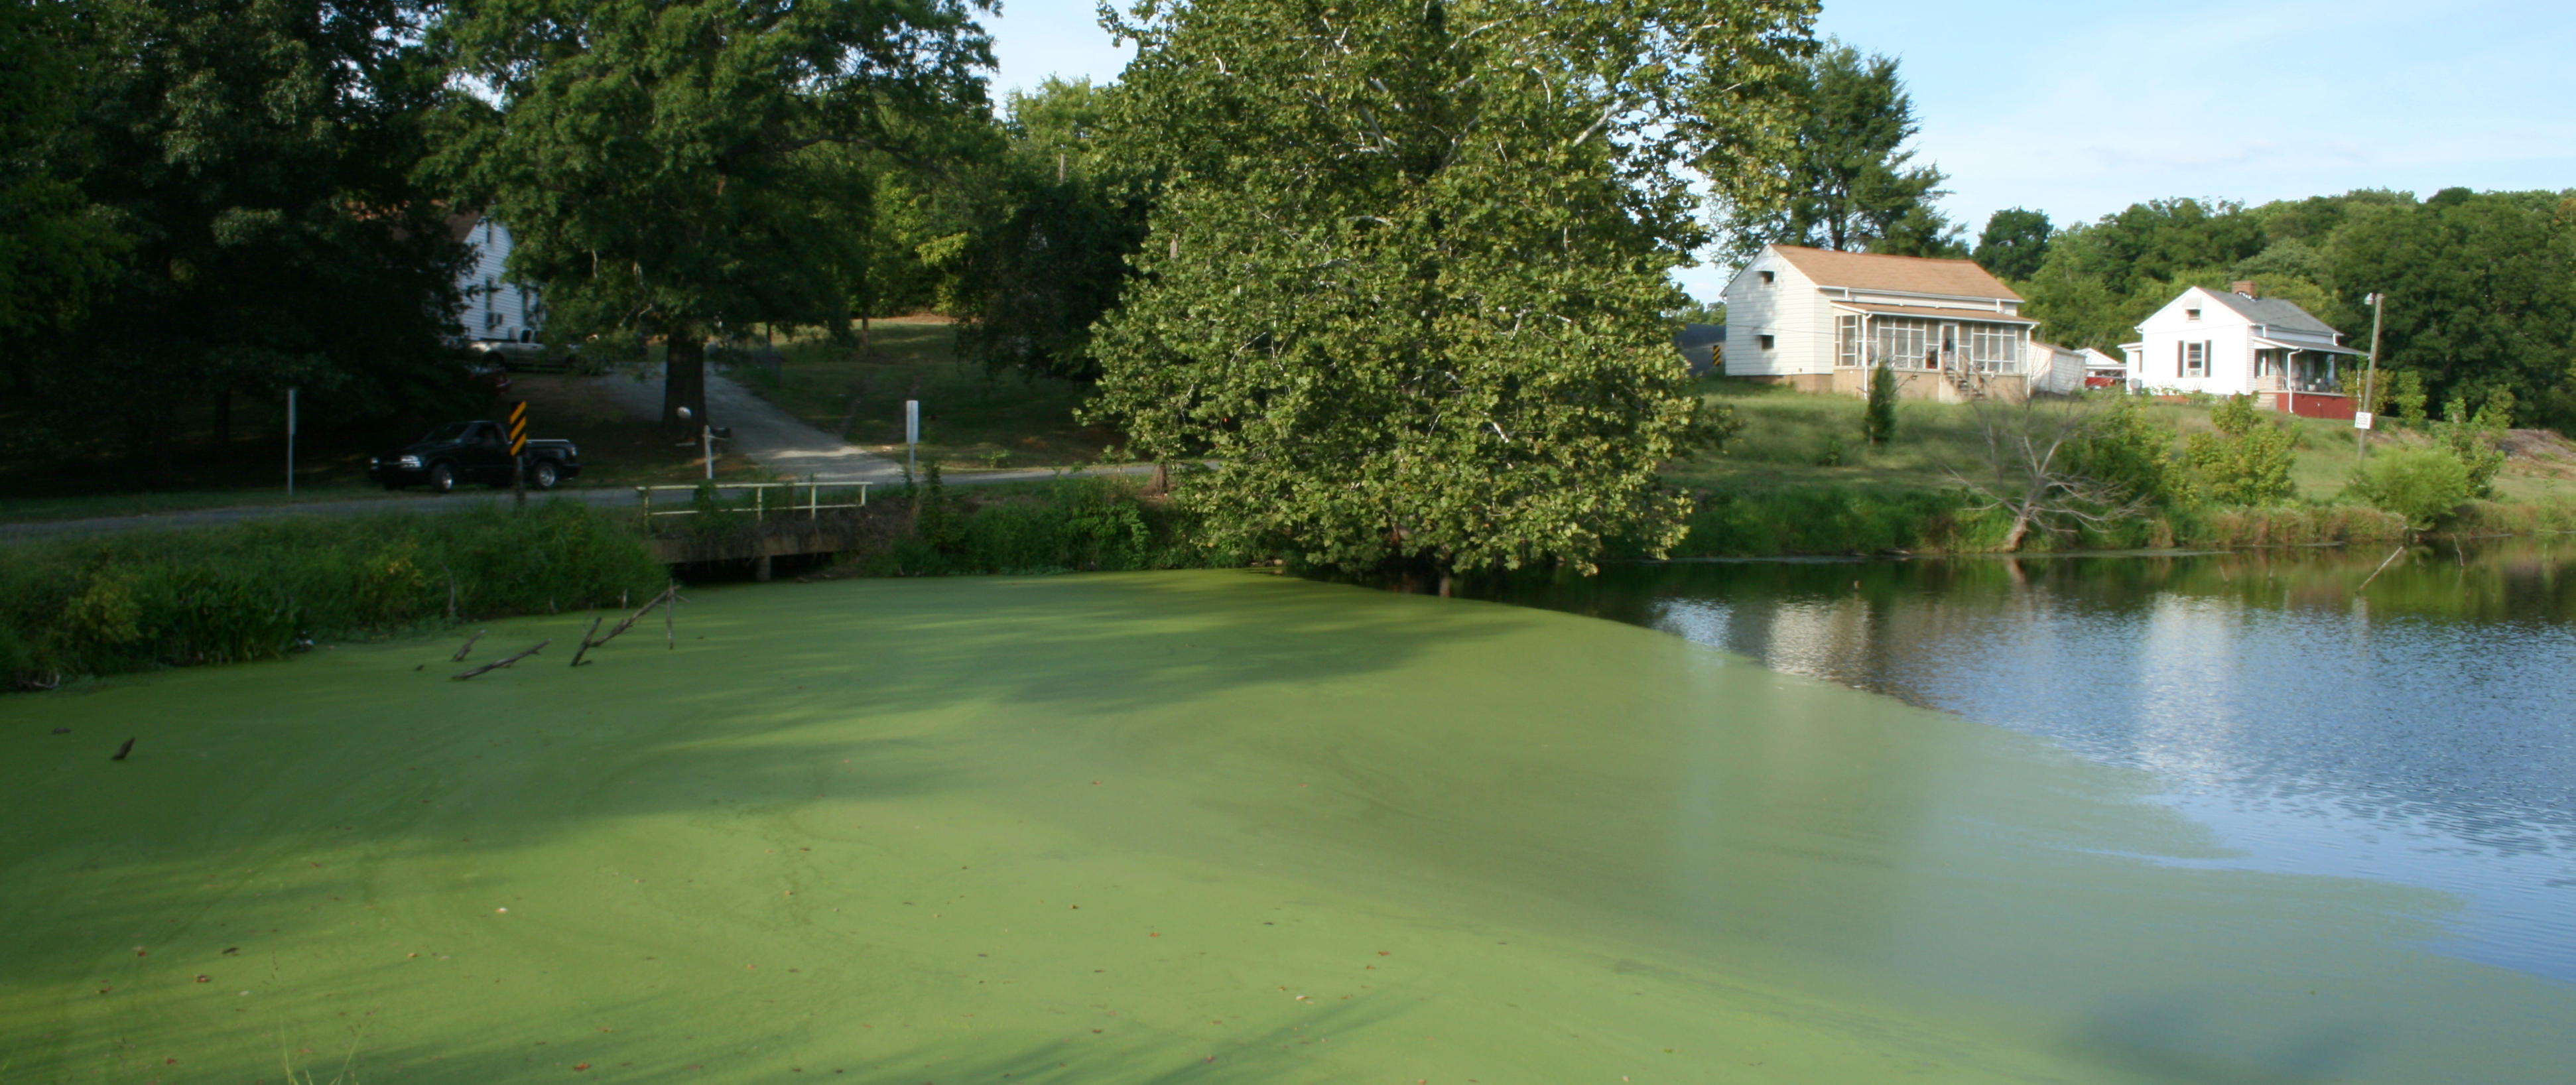 Algae blooming in pond near white house